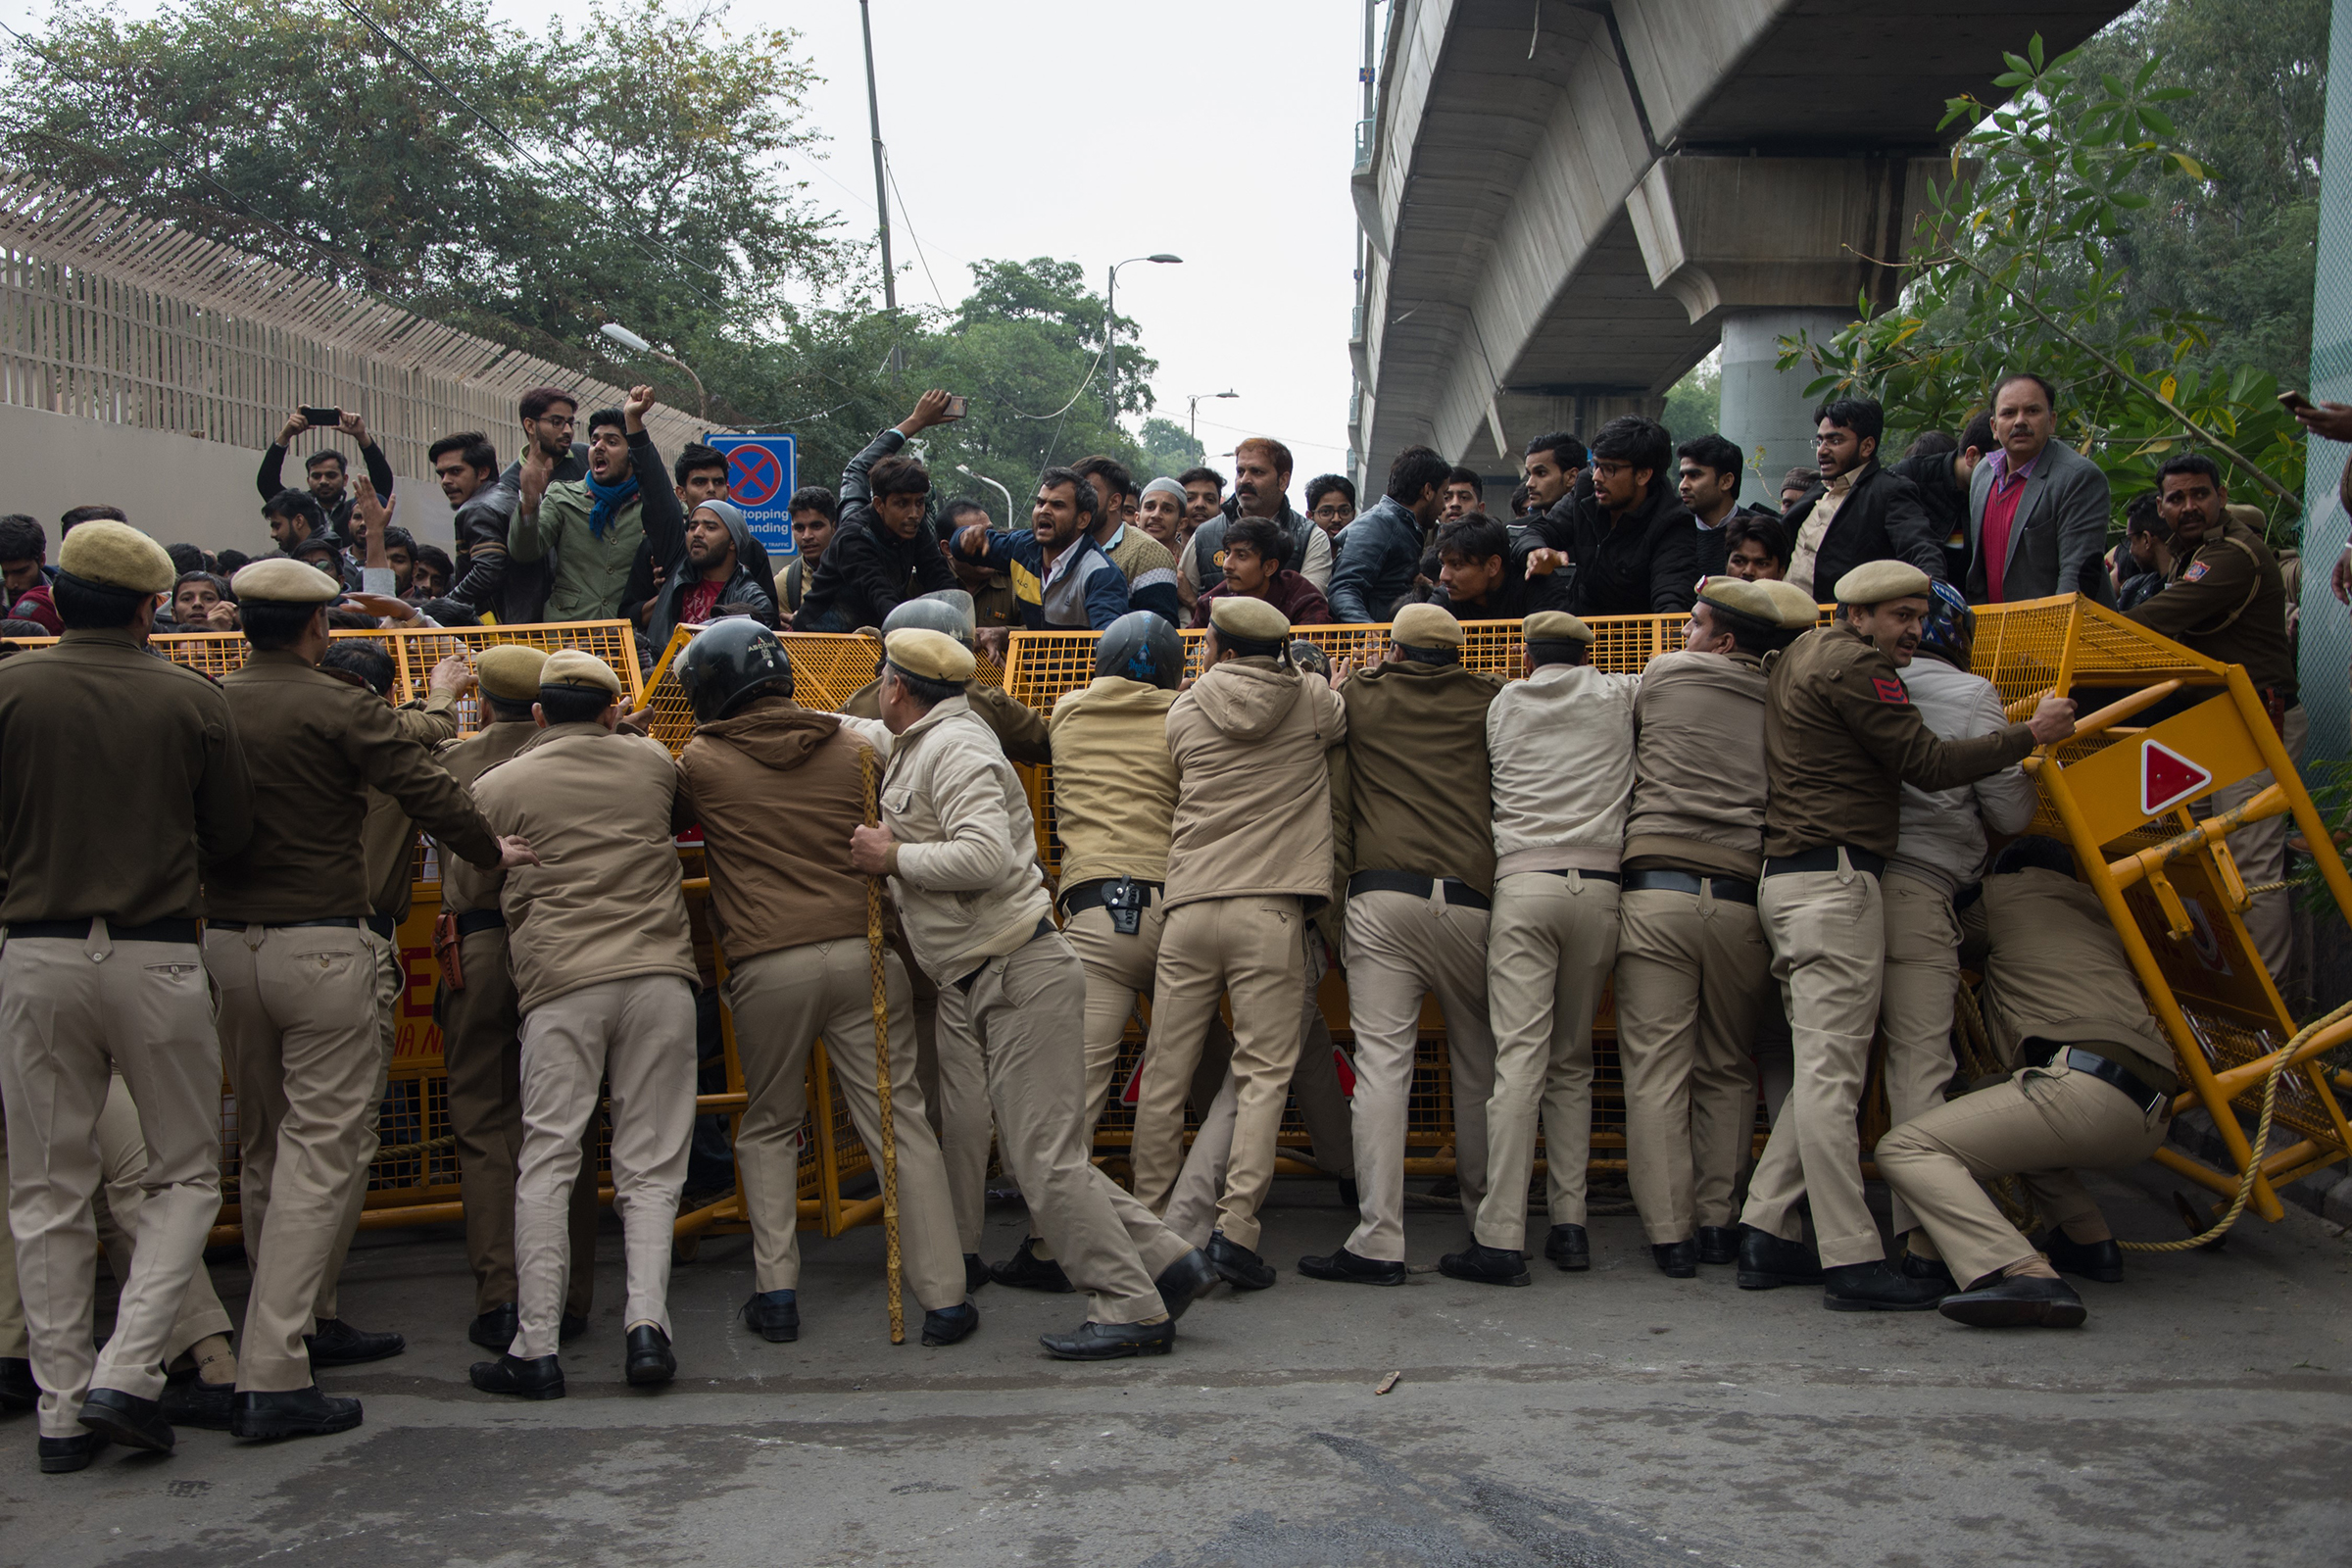 Protests against the controversial Citizenship Amendment Act turned violent when Delhi Police shot tear gas and beat students at Jamia Millia Islamia University in Delhi, India on Dec. 13, 2019.